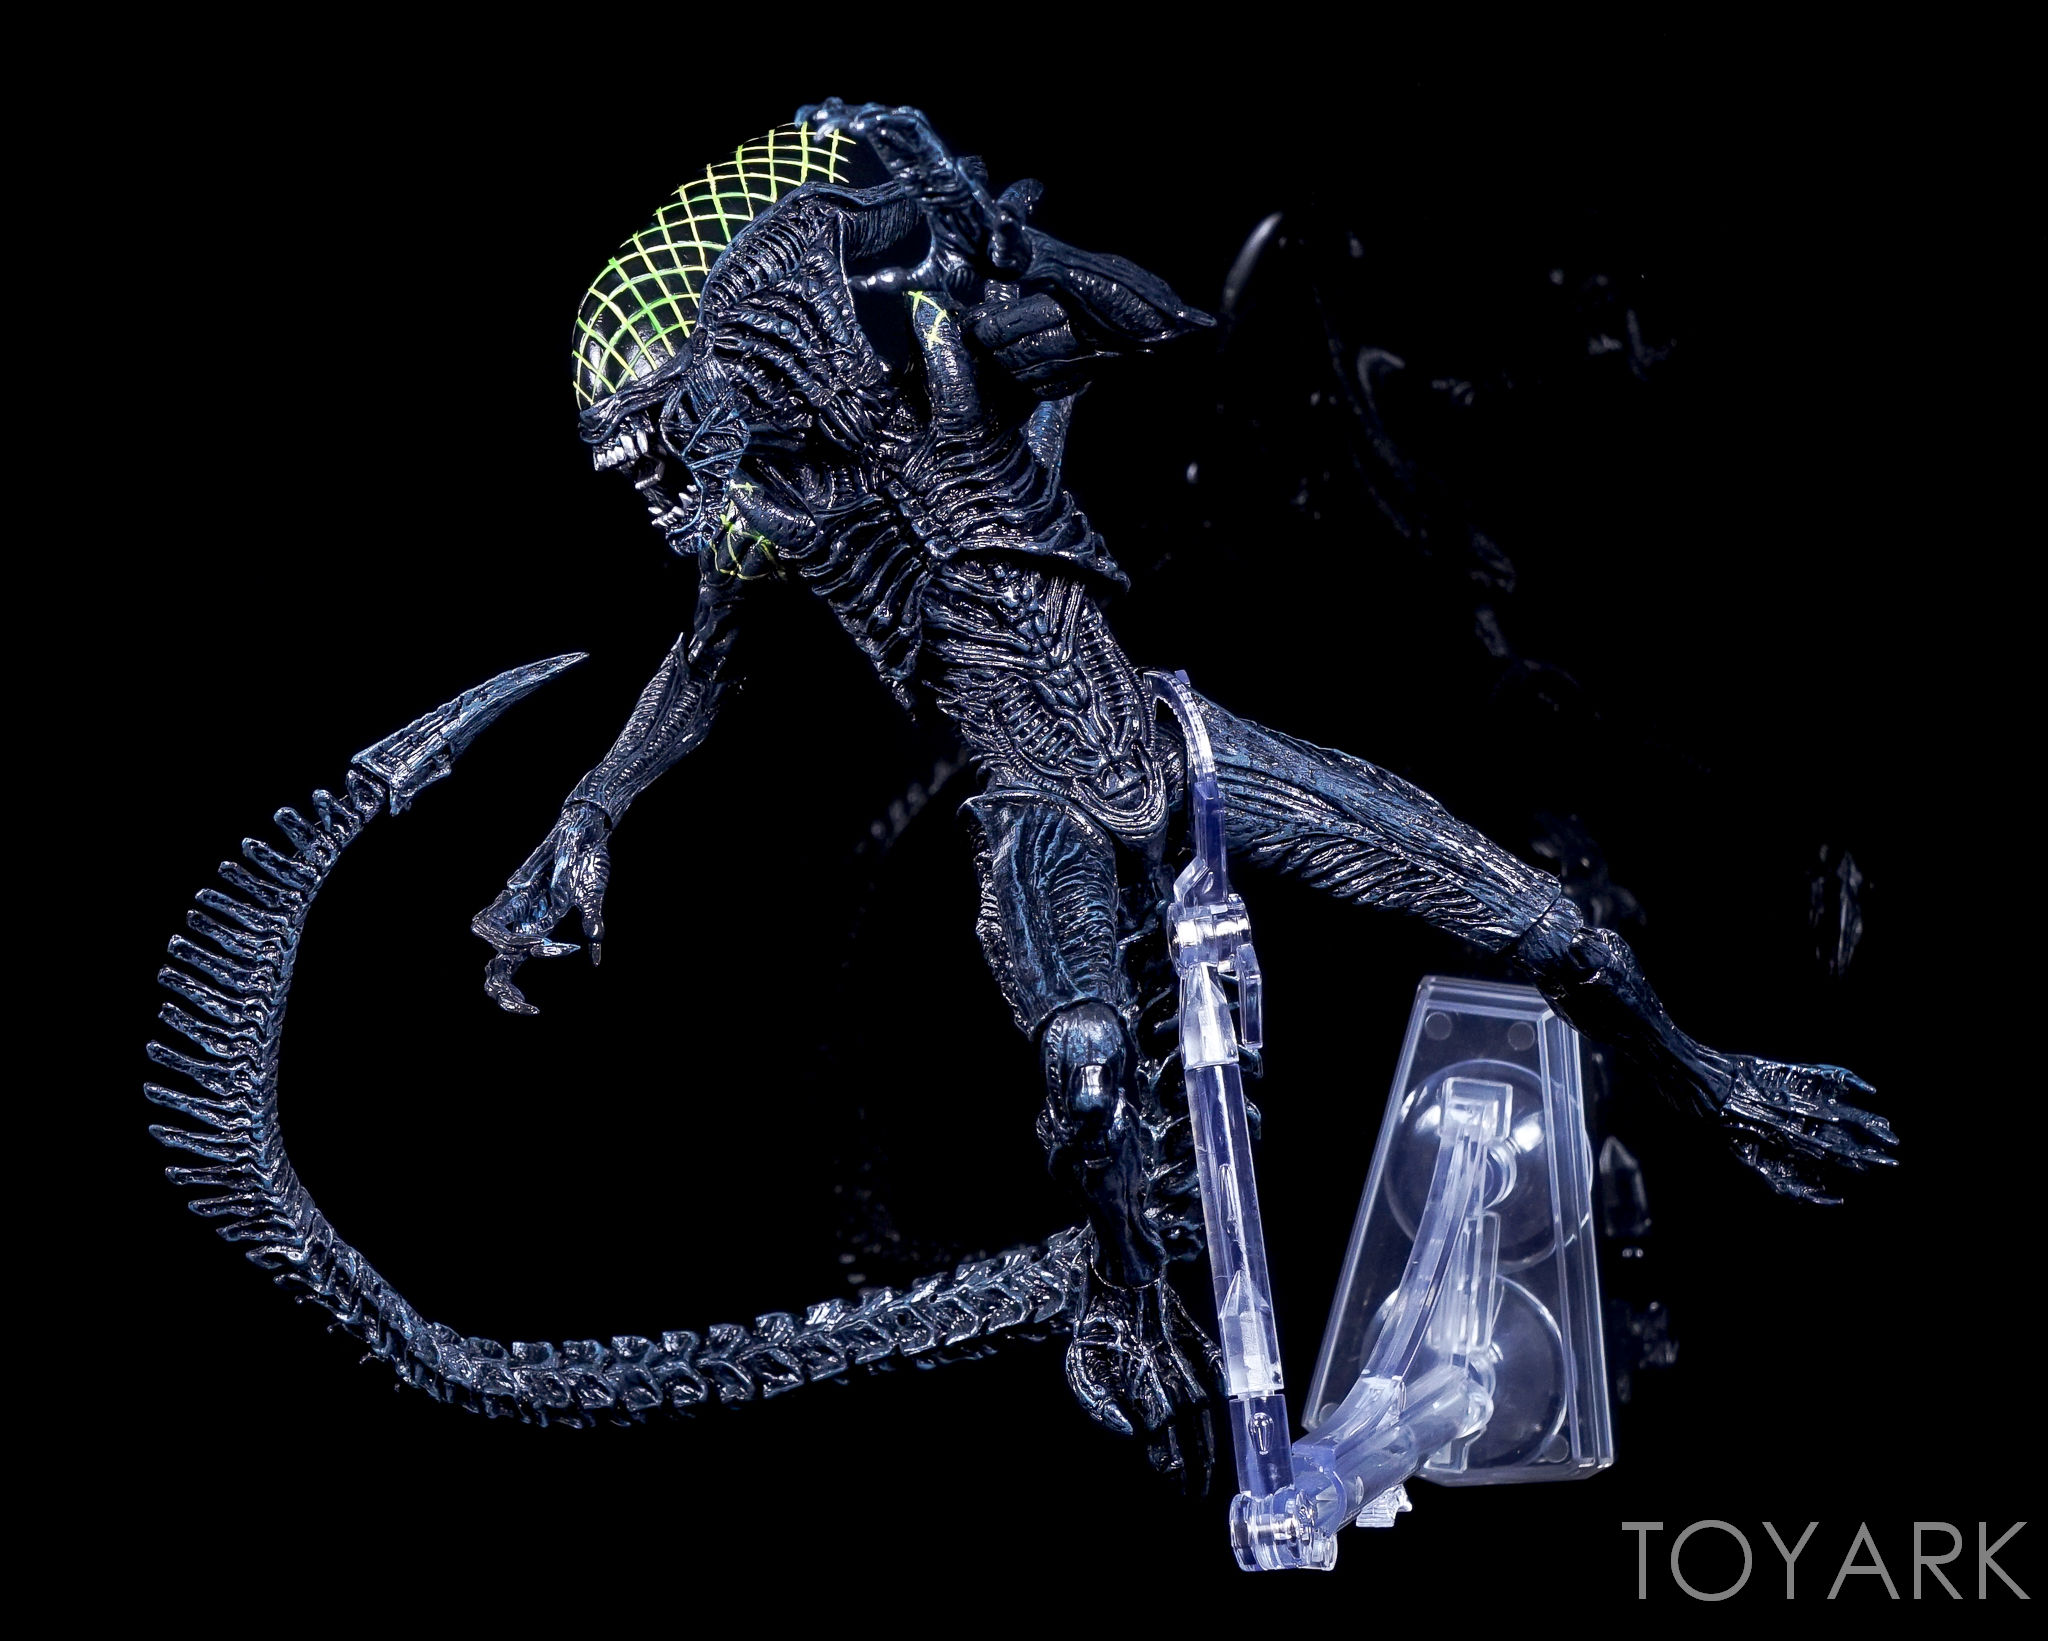 http://news.toyark.com/wp-content/uploads/sites/4/2016/09/Dynamic-Figure-Stand-NECA-031.jpg